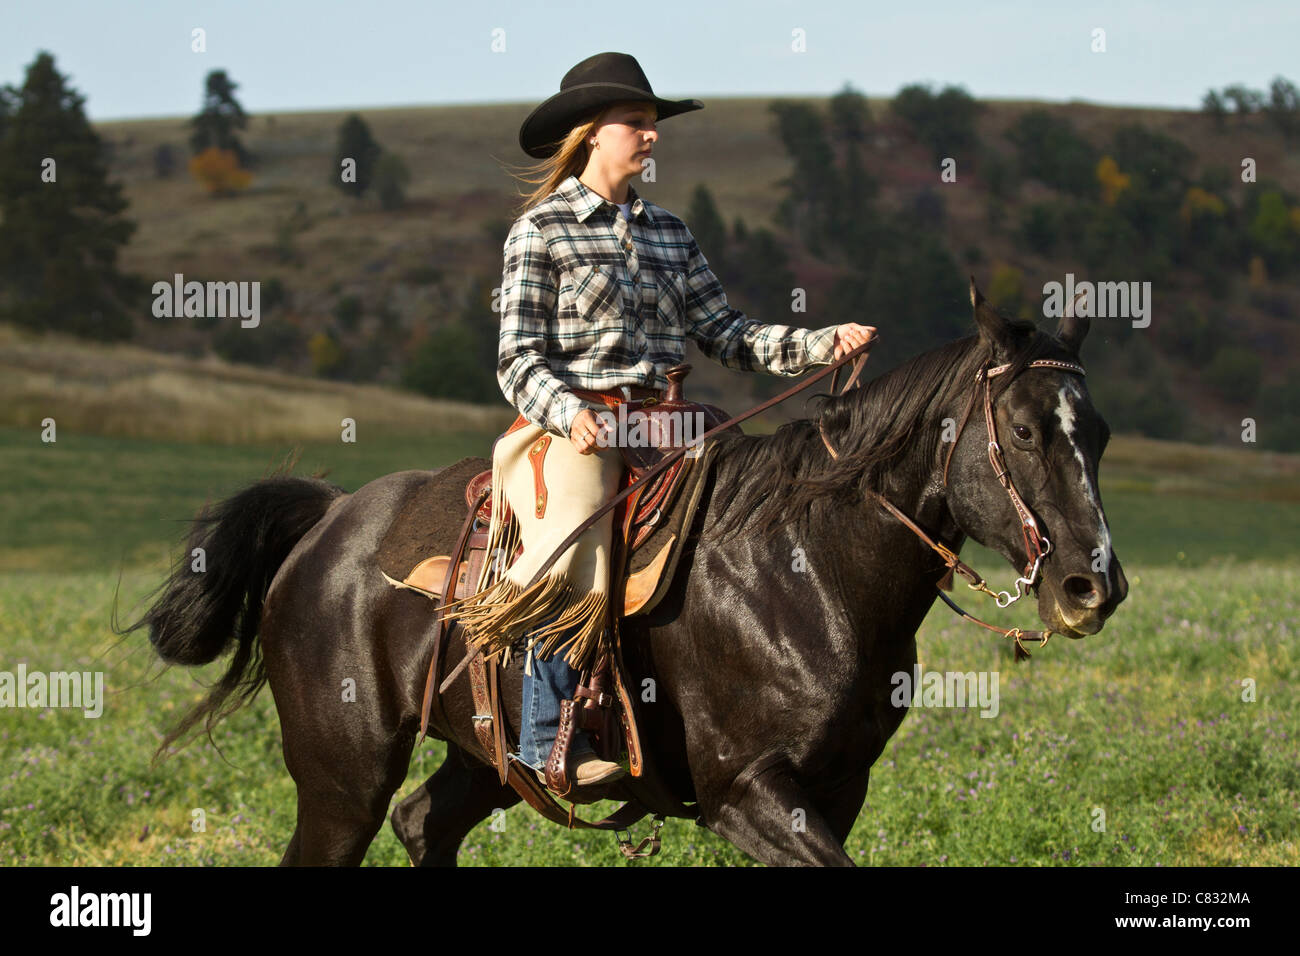 Cowgirl On A Black Horse Riding By Stock Photo Alamy